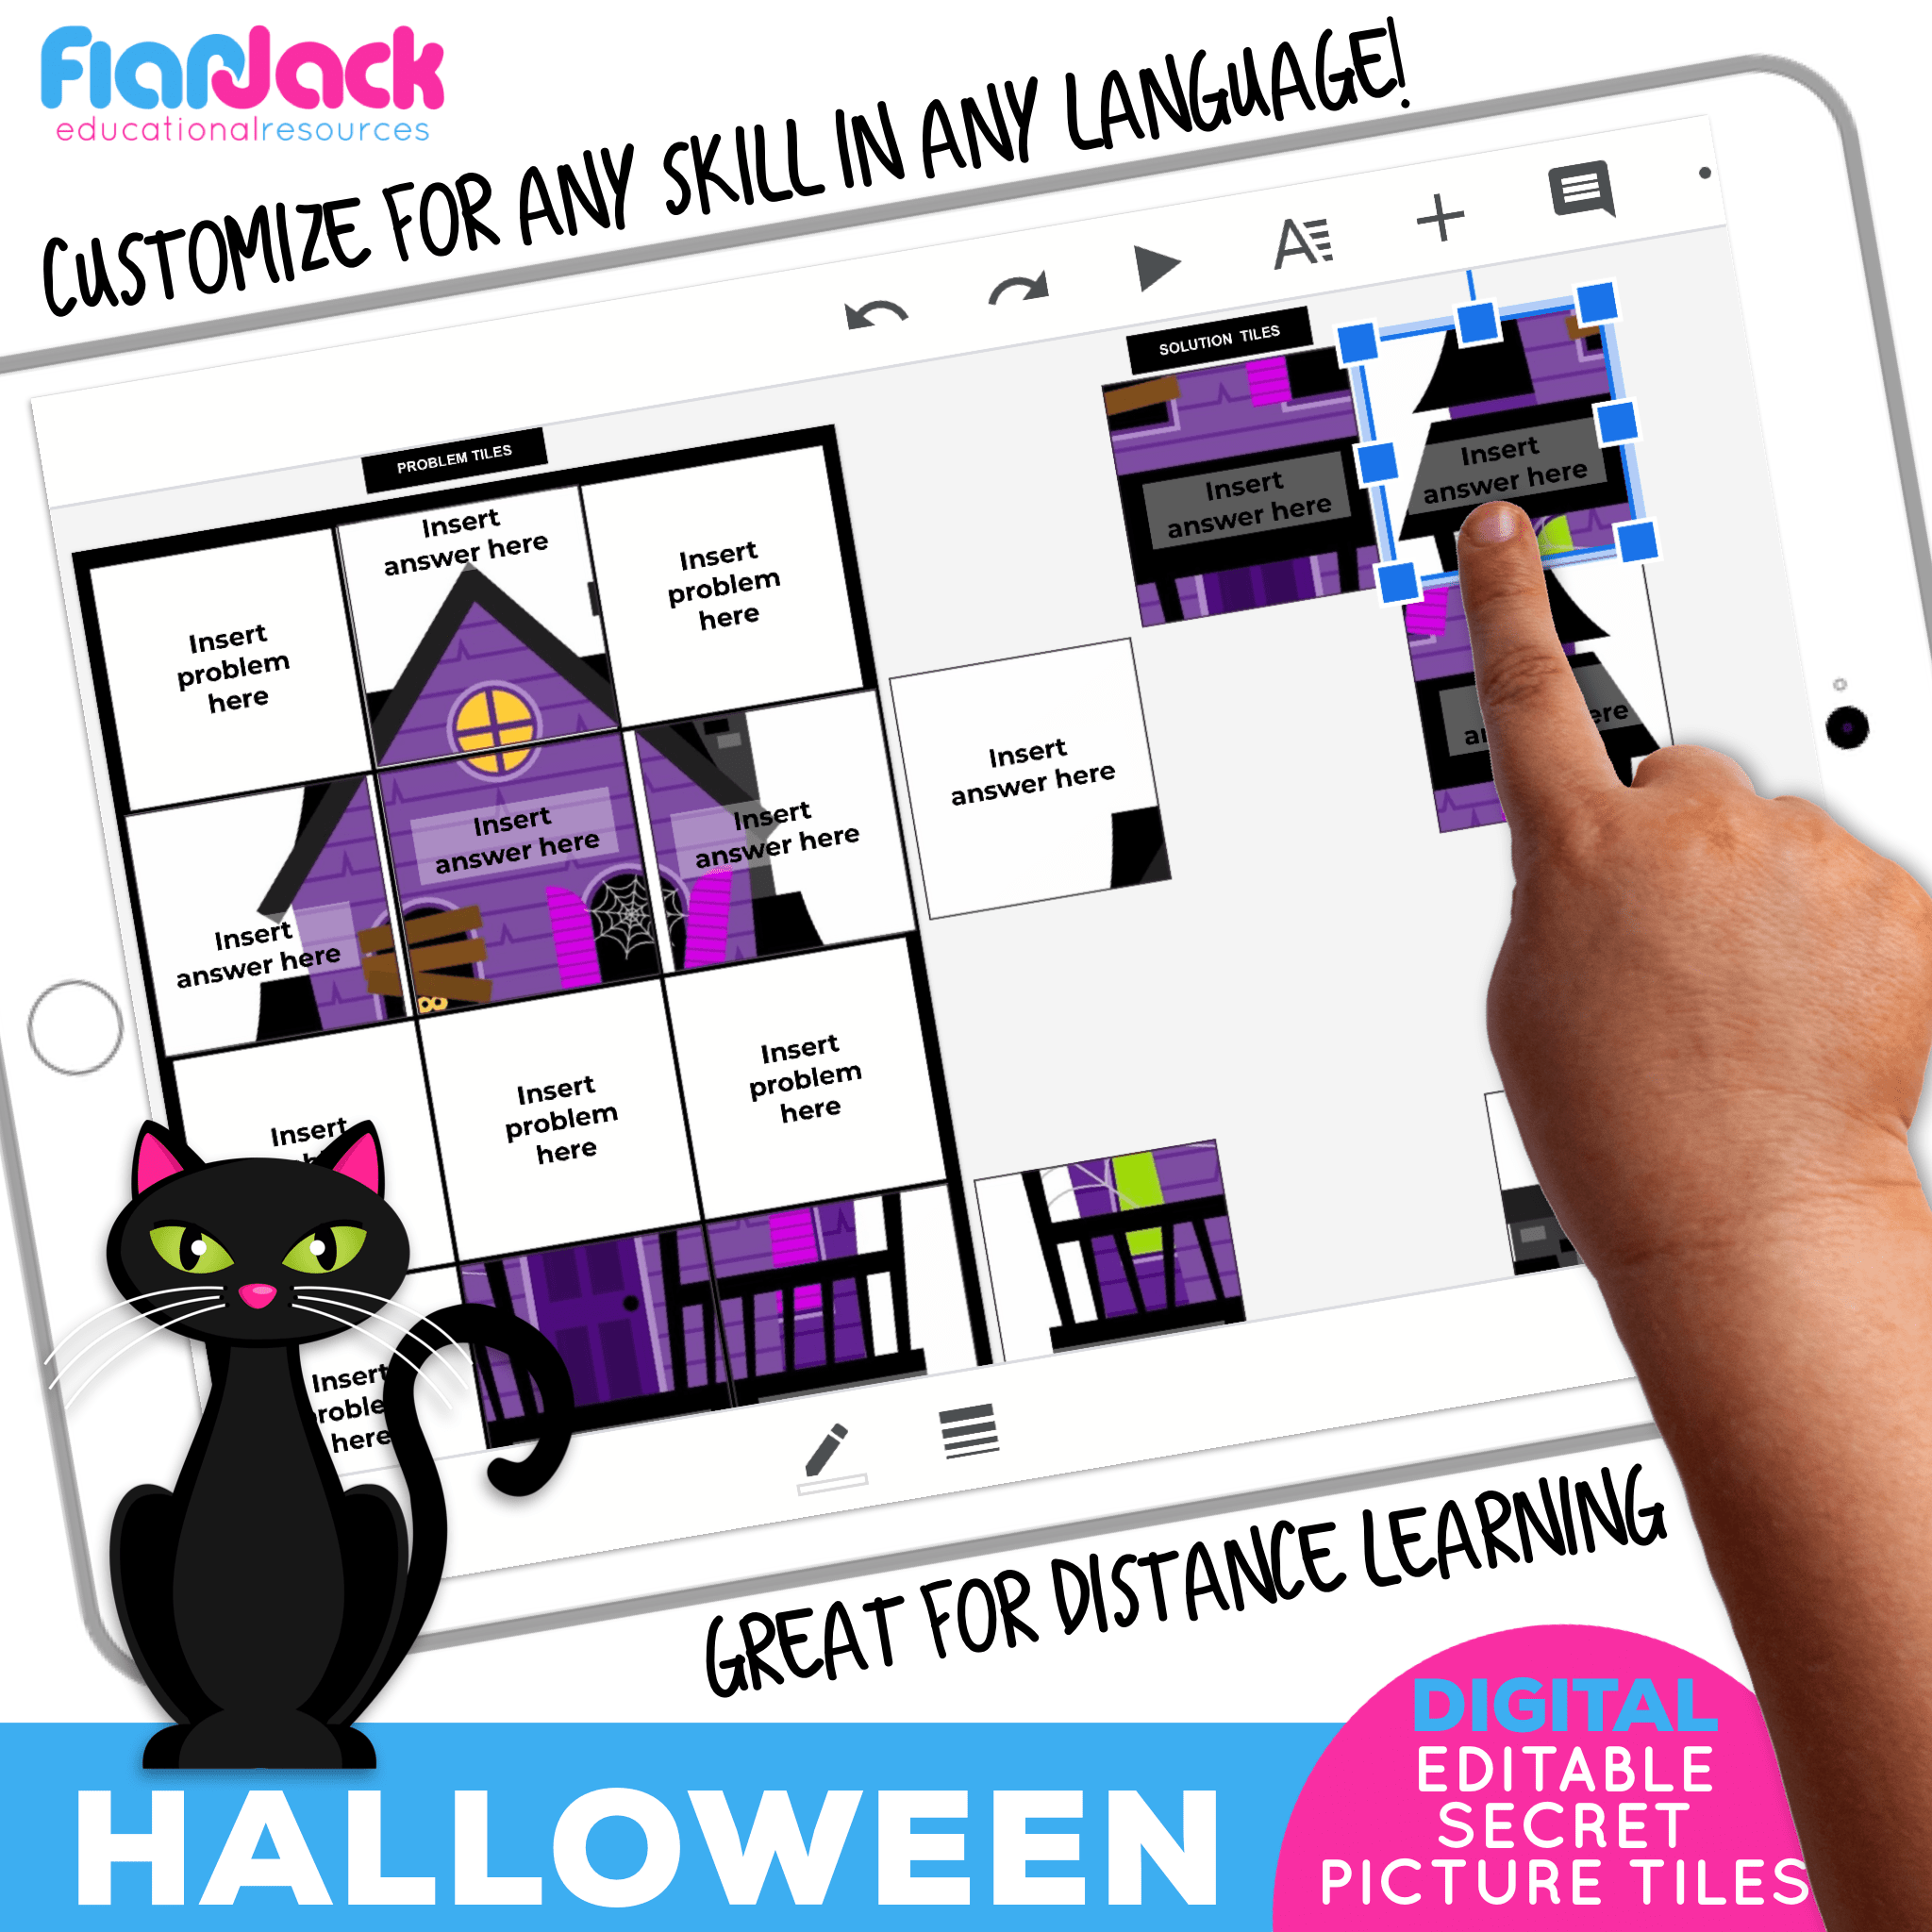 Digital Editable Google Slide Secret Picture Tiles | Halloween